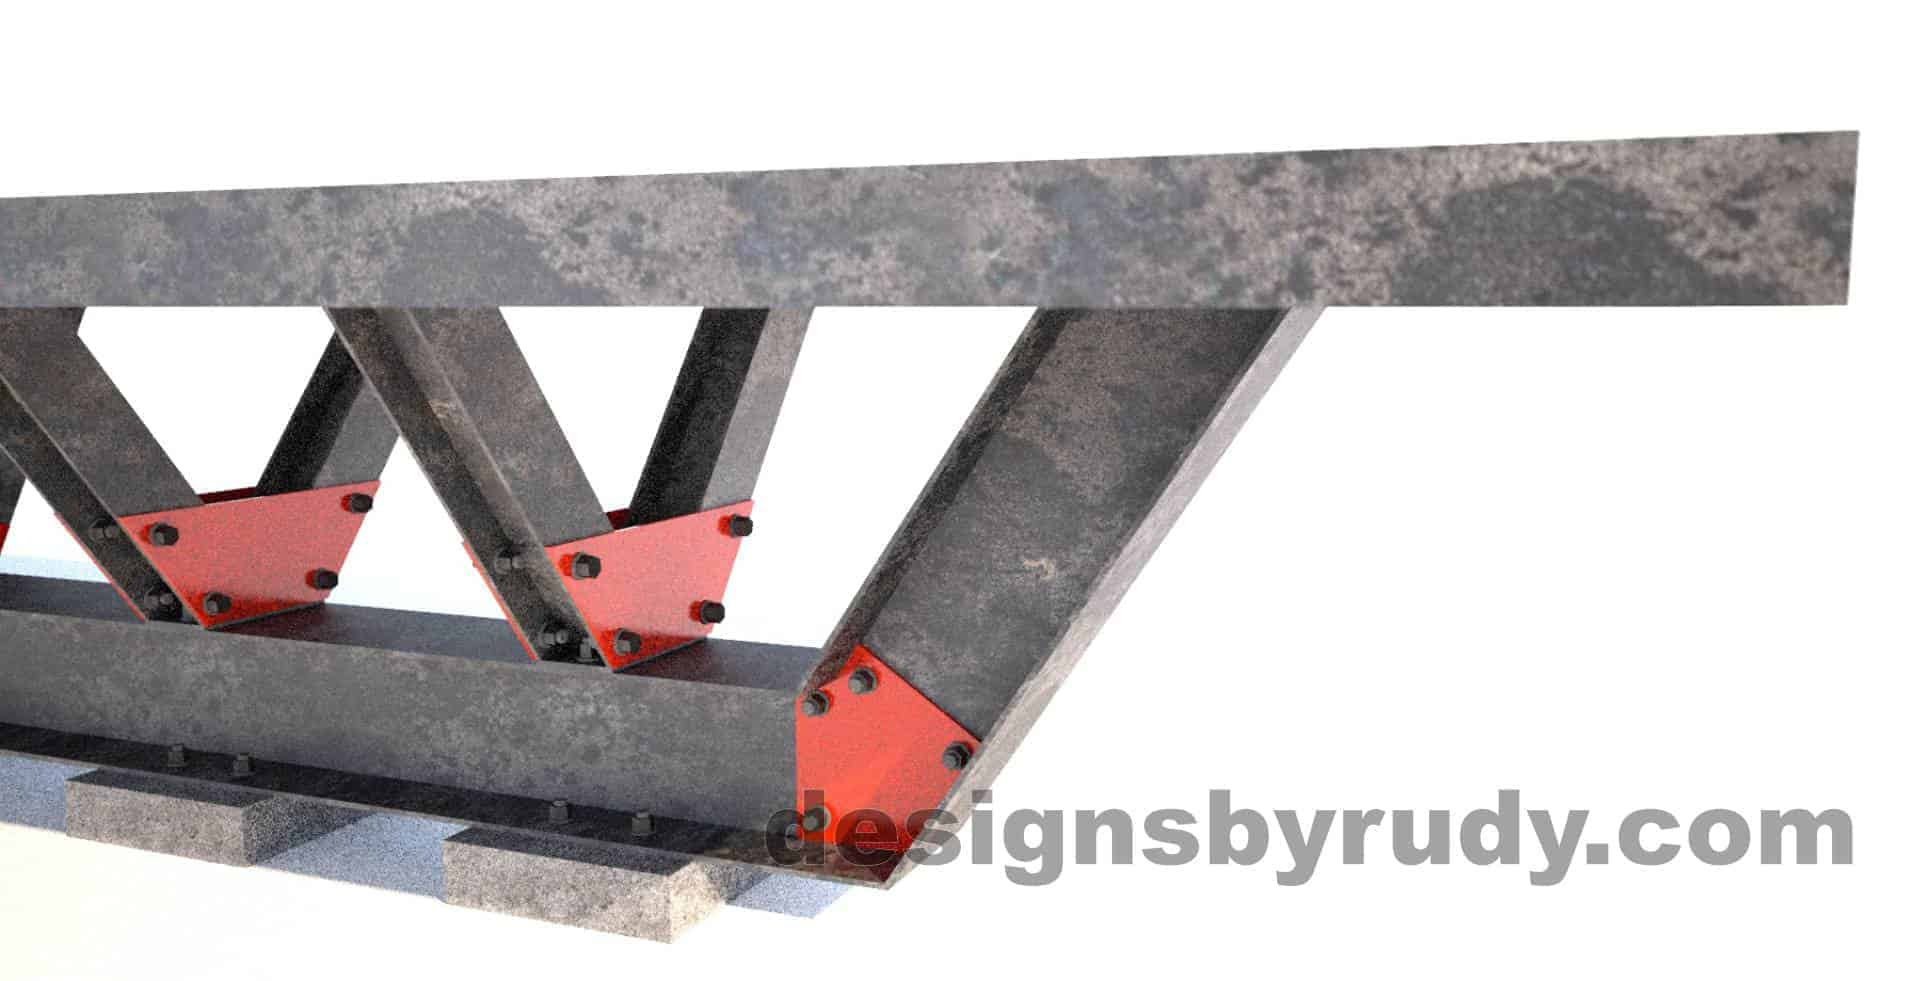 Steel base concrete top conference table design and fabrication by Designs by Rudy (6)